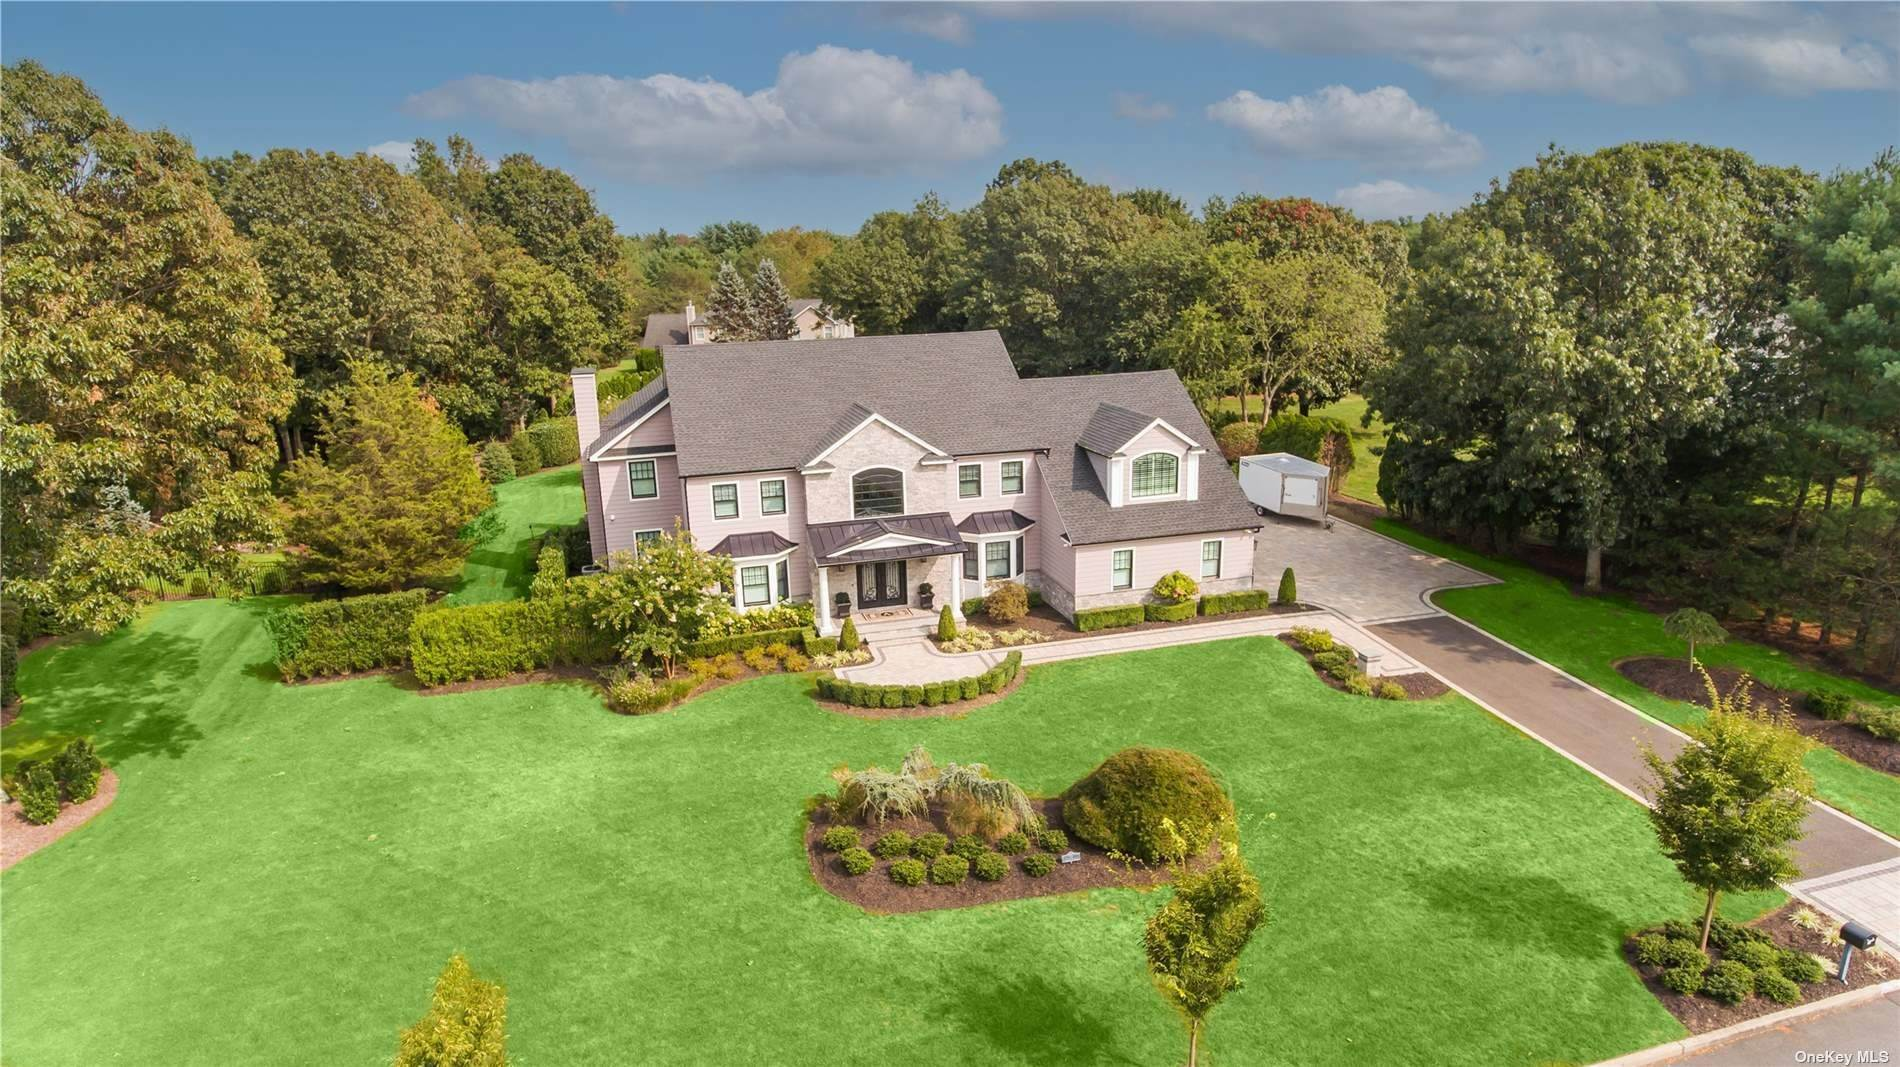 Residential for Sale at 73 Elderwood Drive St. James, New York 11780 United States